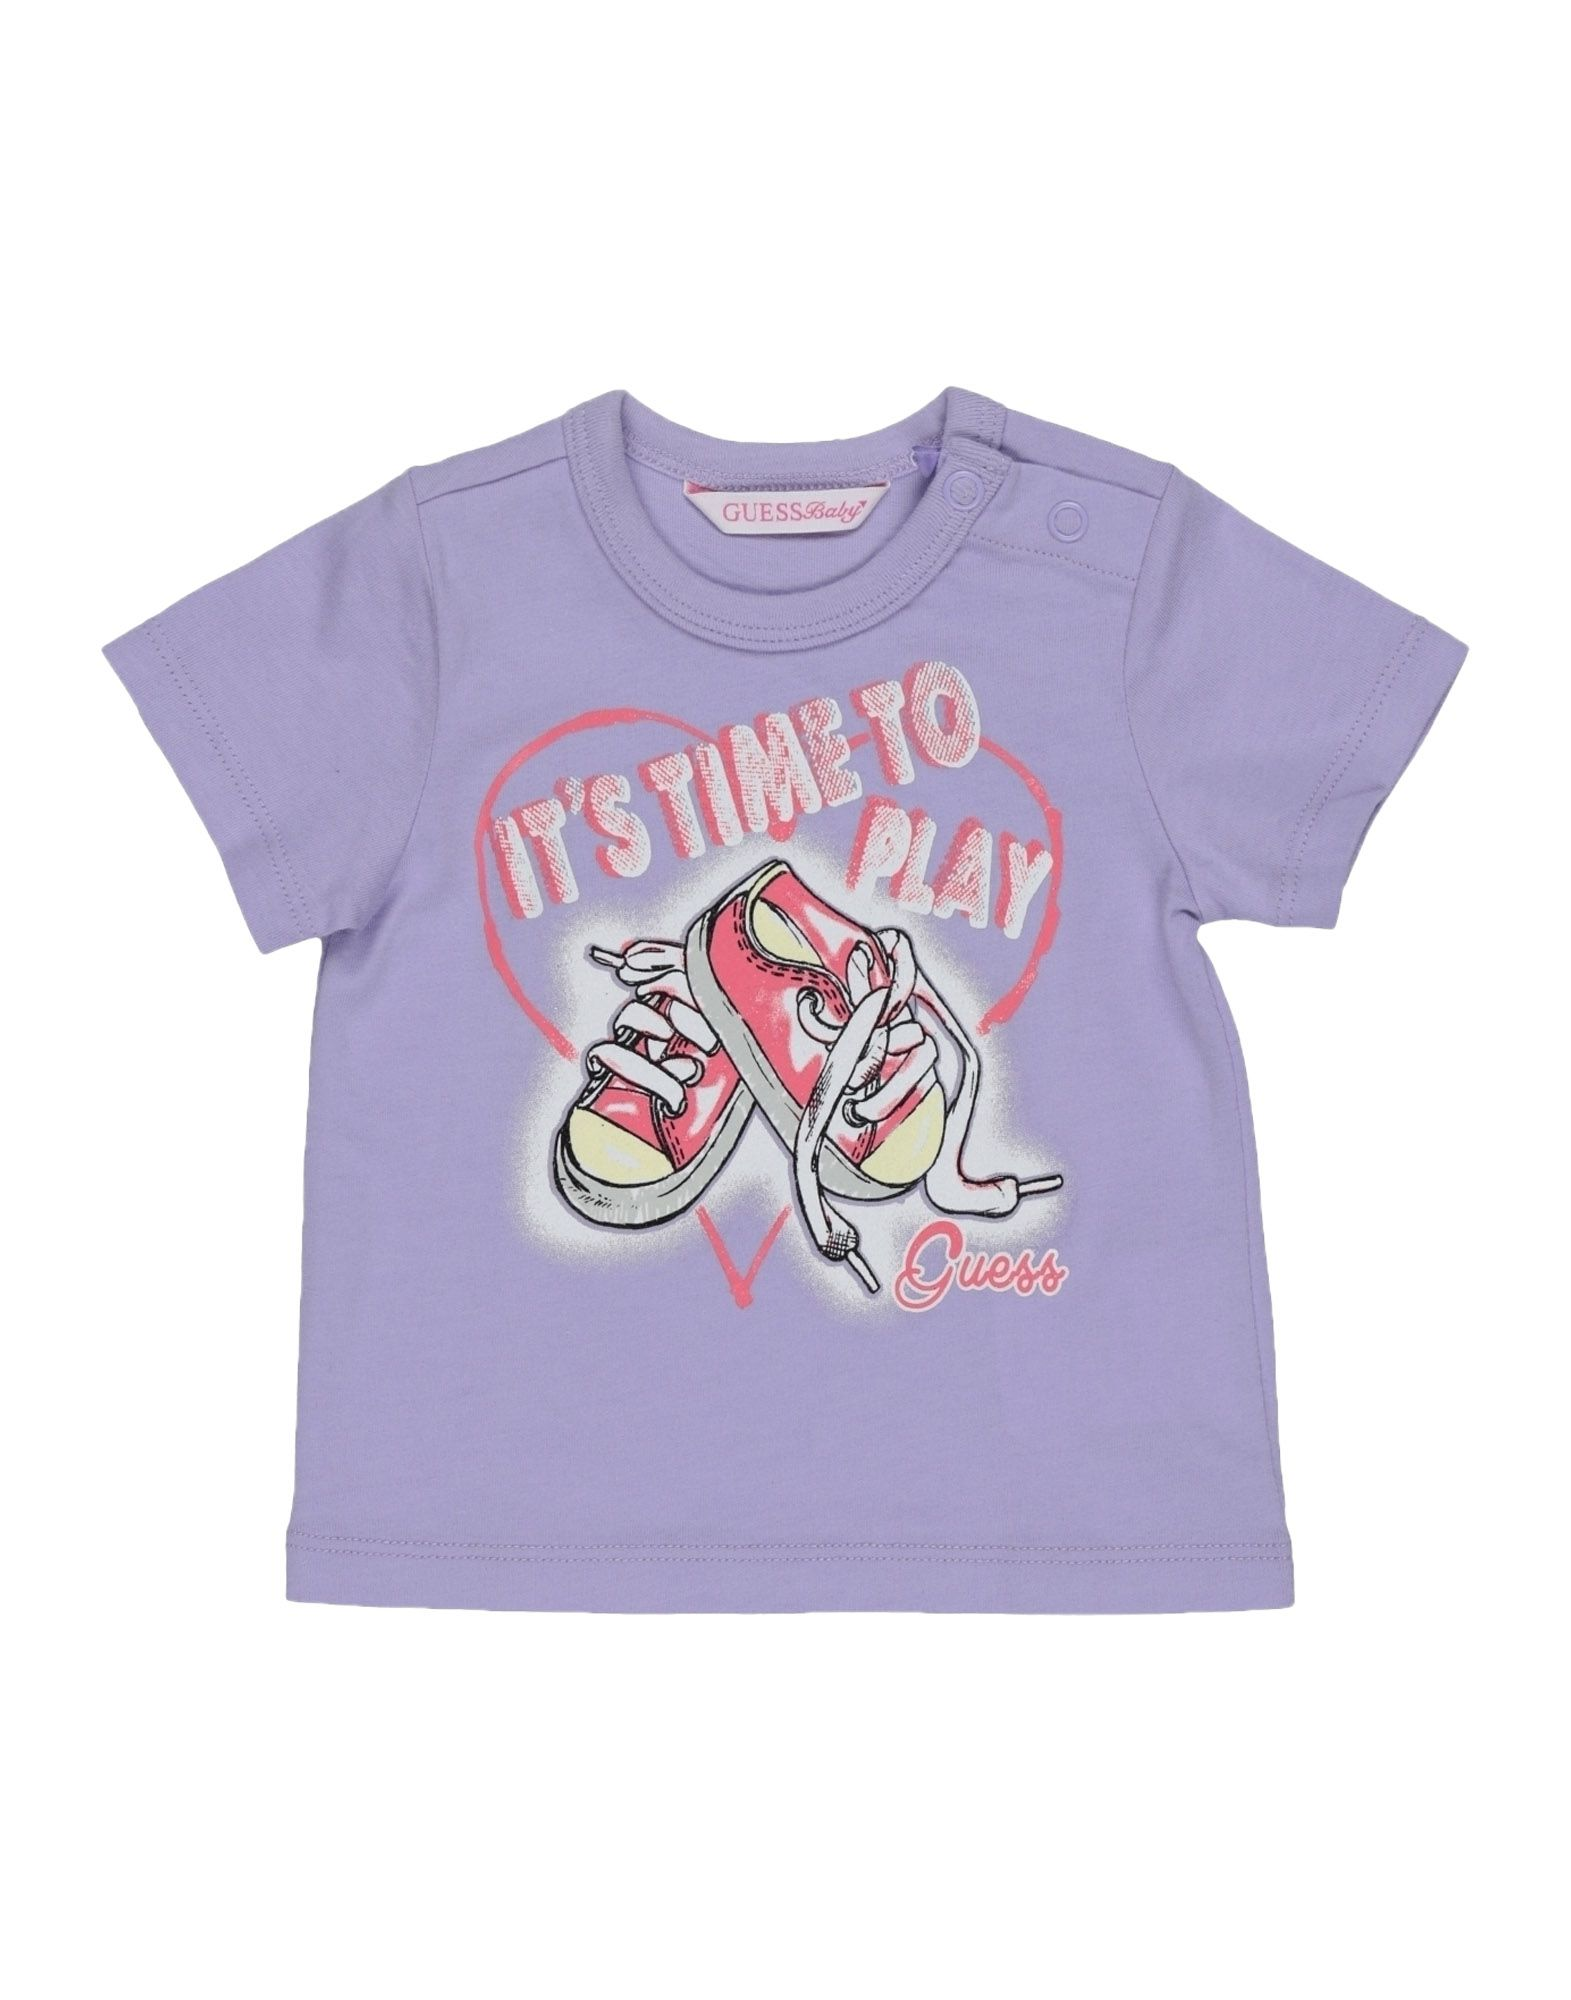 Guess clothing for baby girl & toddler 0 24 months